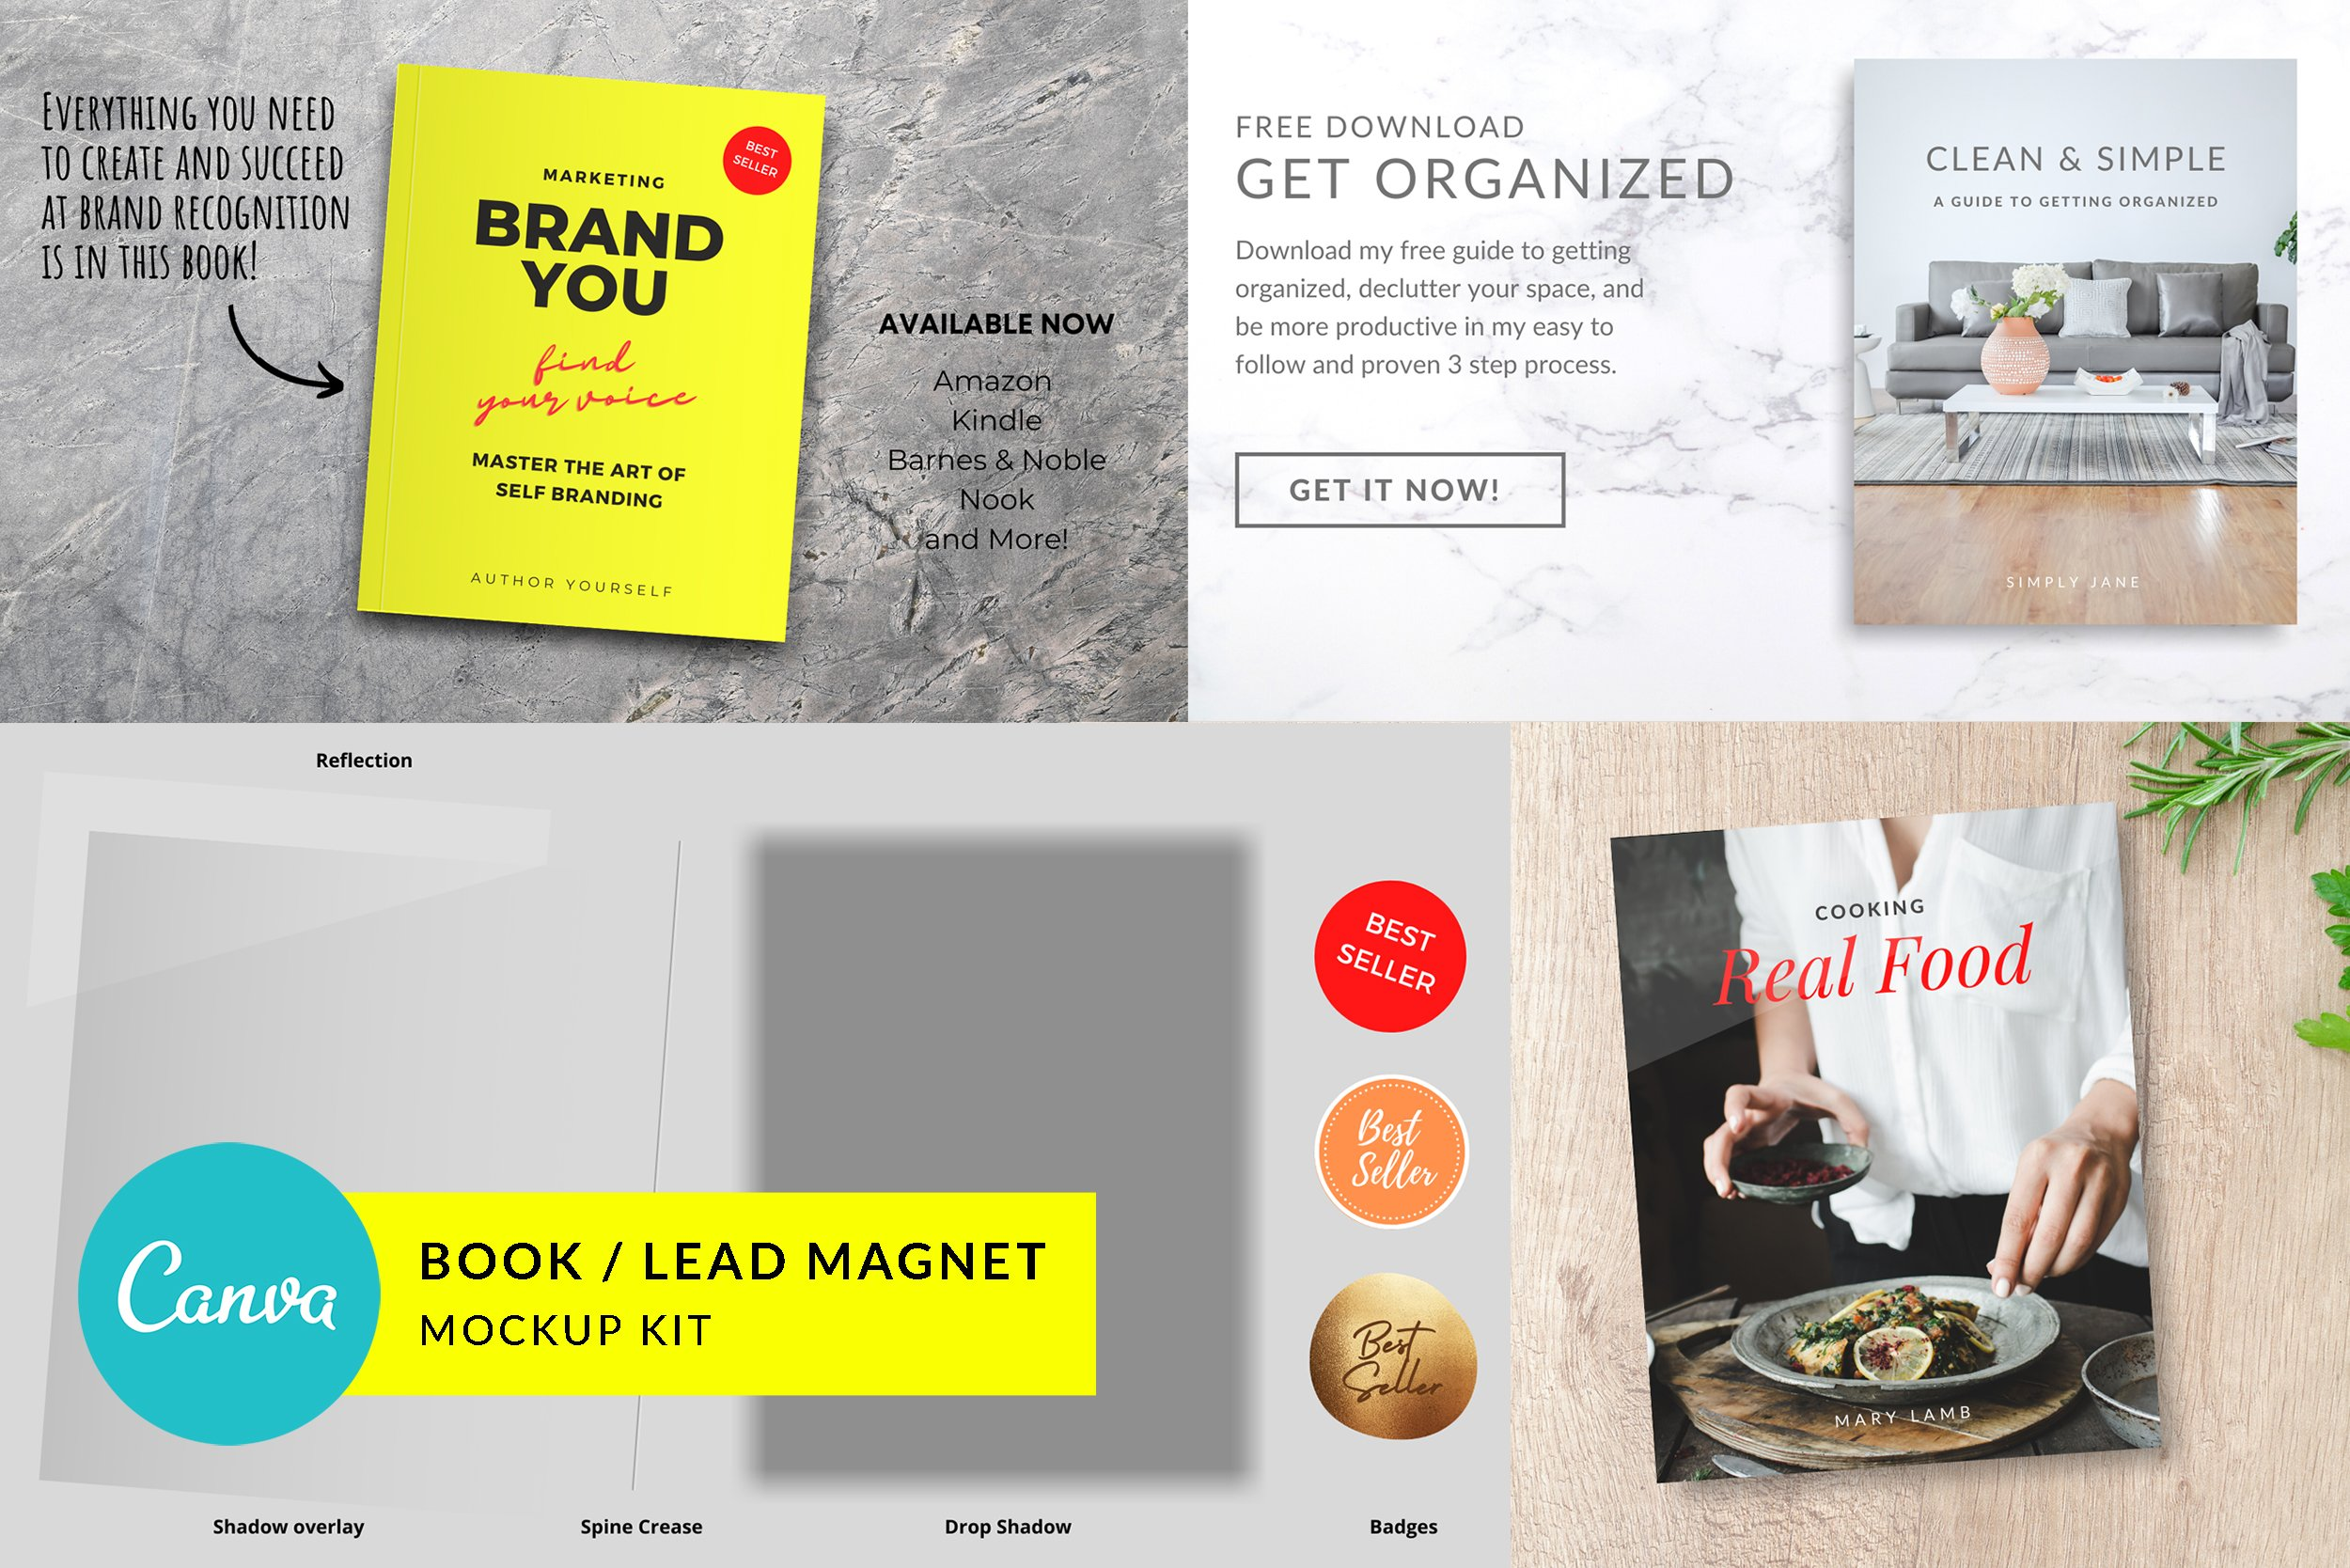 Canva Book and Lead Magnet Mockup